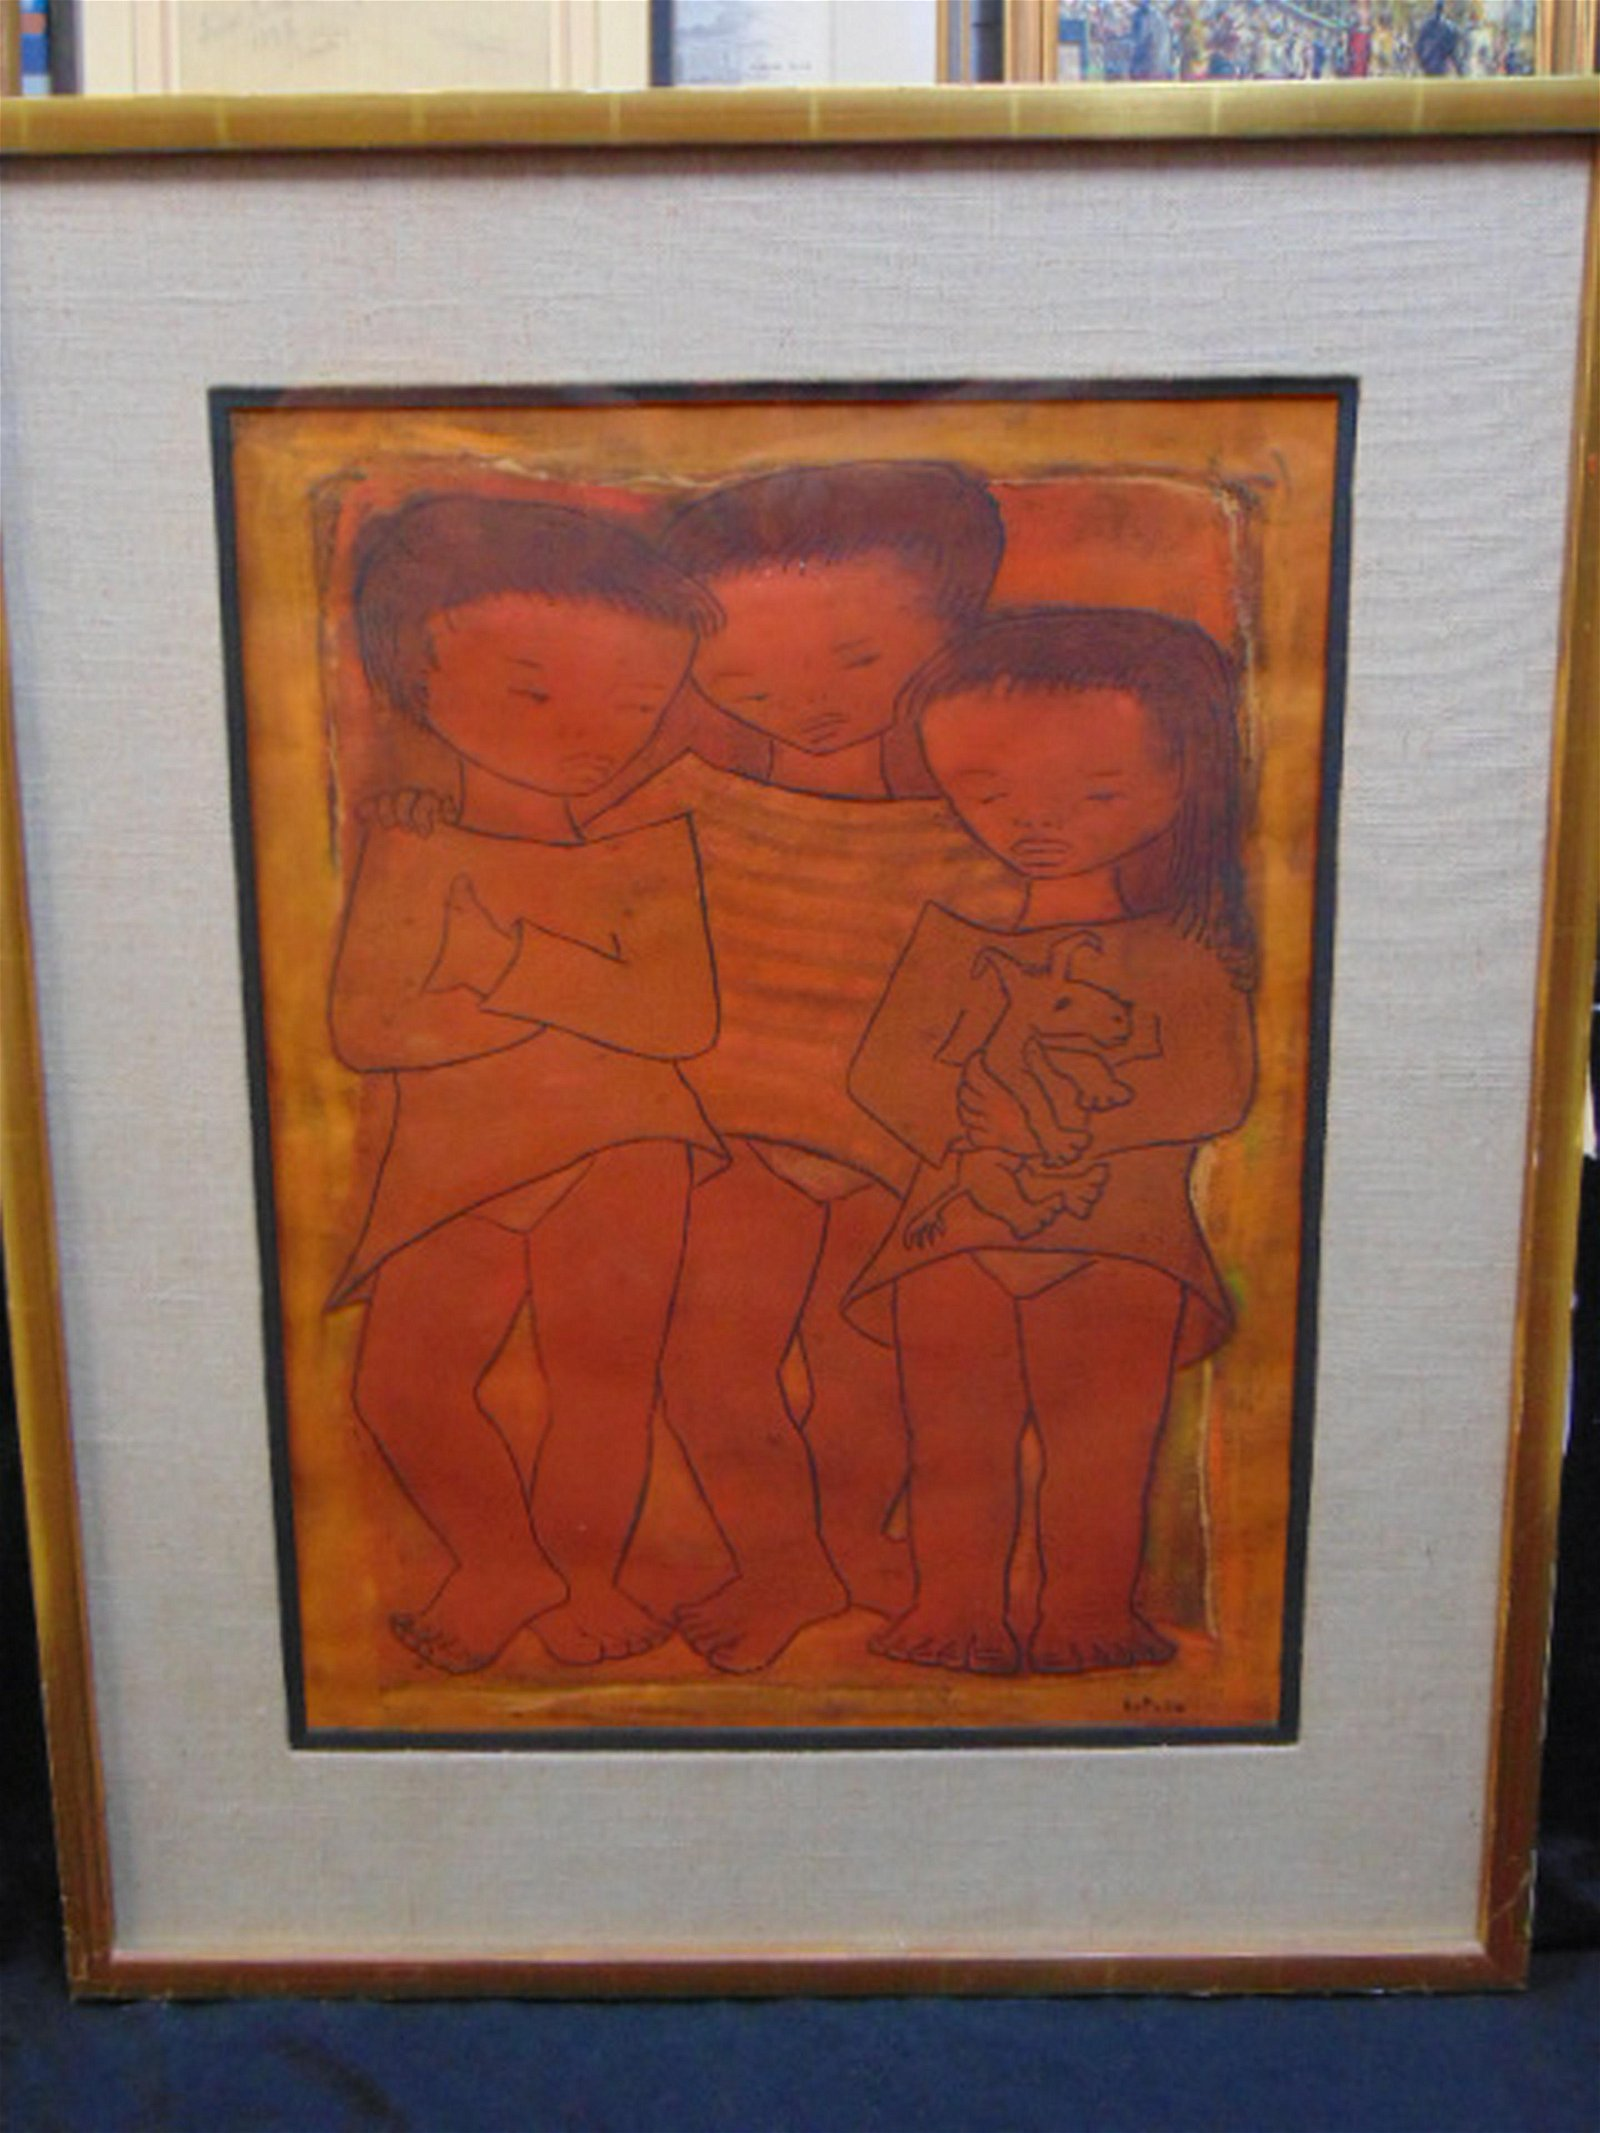 Lithograph, 3 children, Angel Botello, 16/50,showing